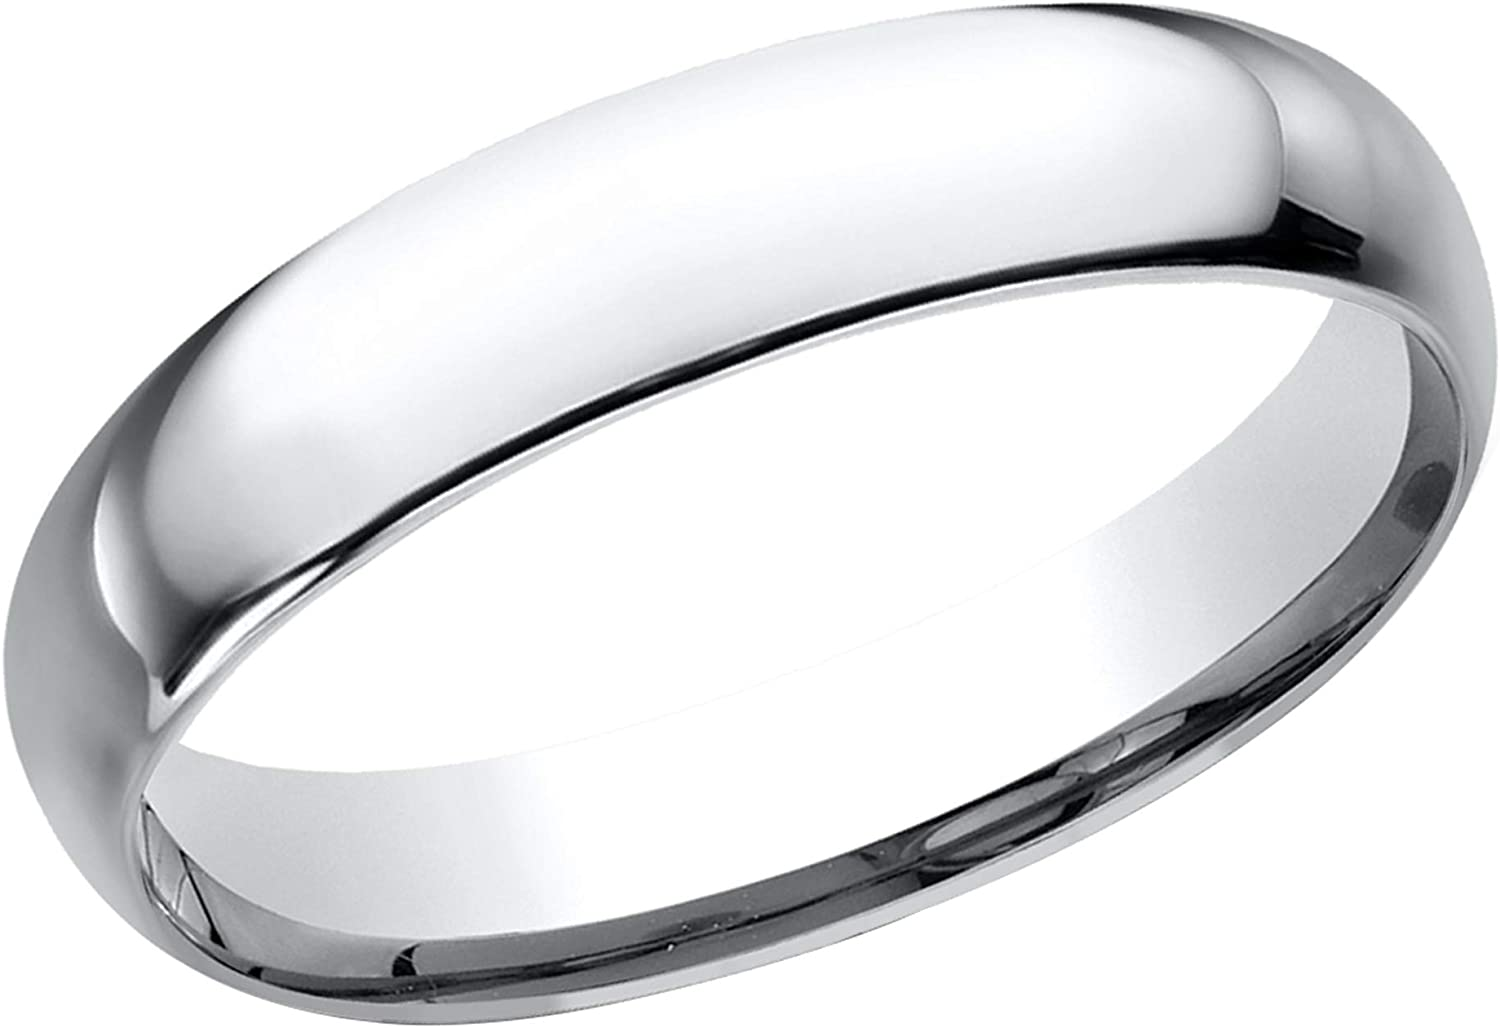 Prism Jewel 4.30mm D Shape Unisex Unisex Plain Stackable Wedding Band Crafted In 925 Sterling Silver